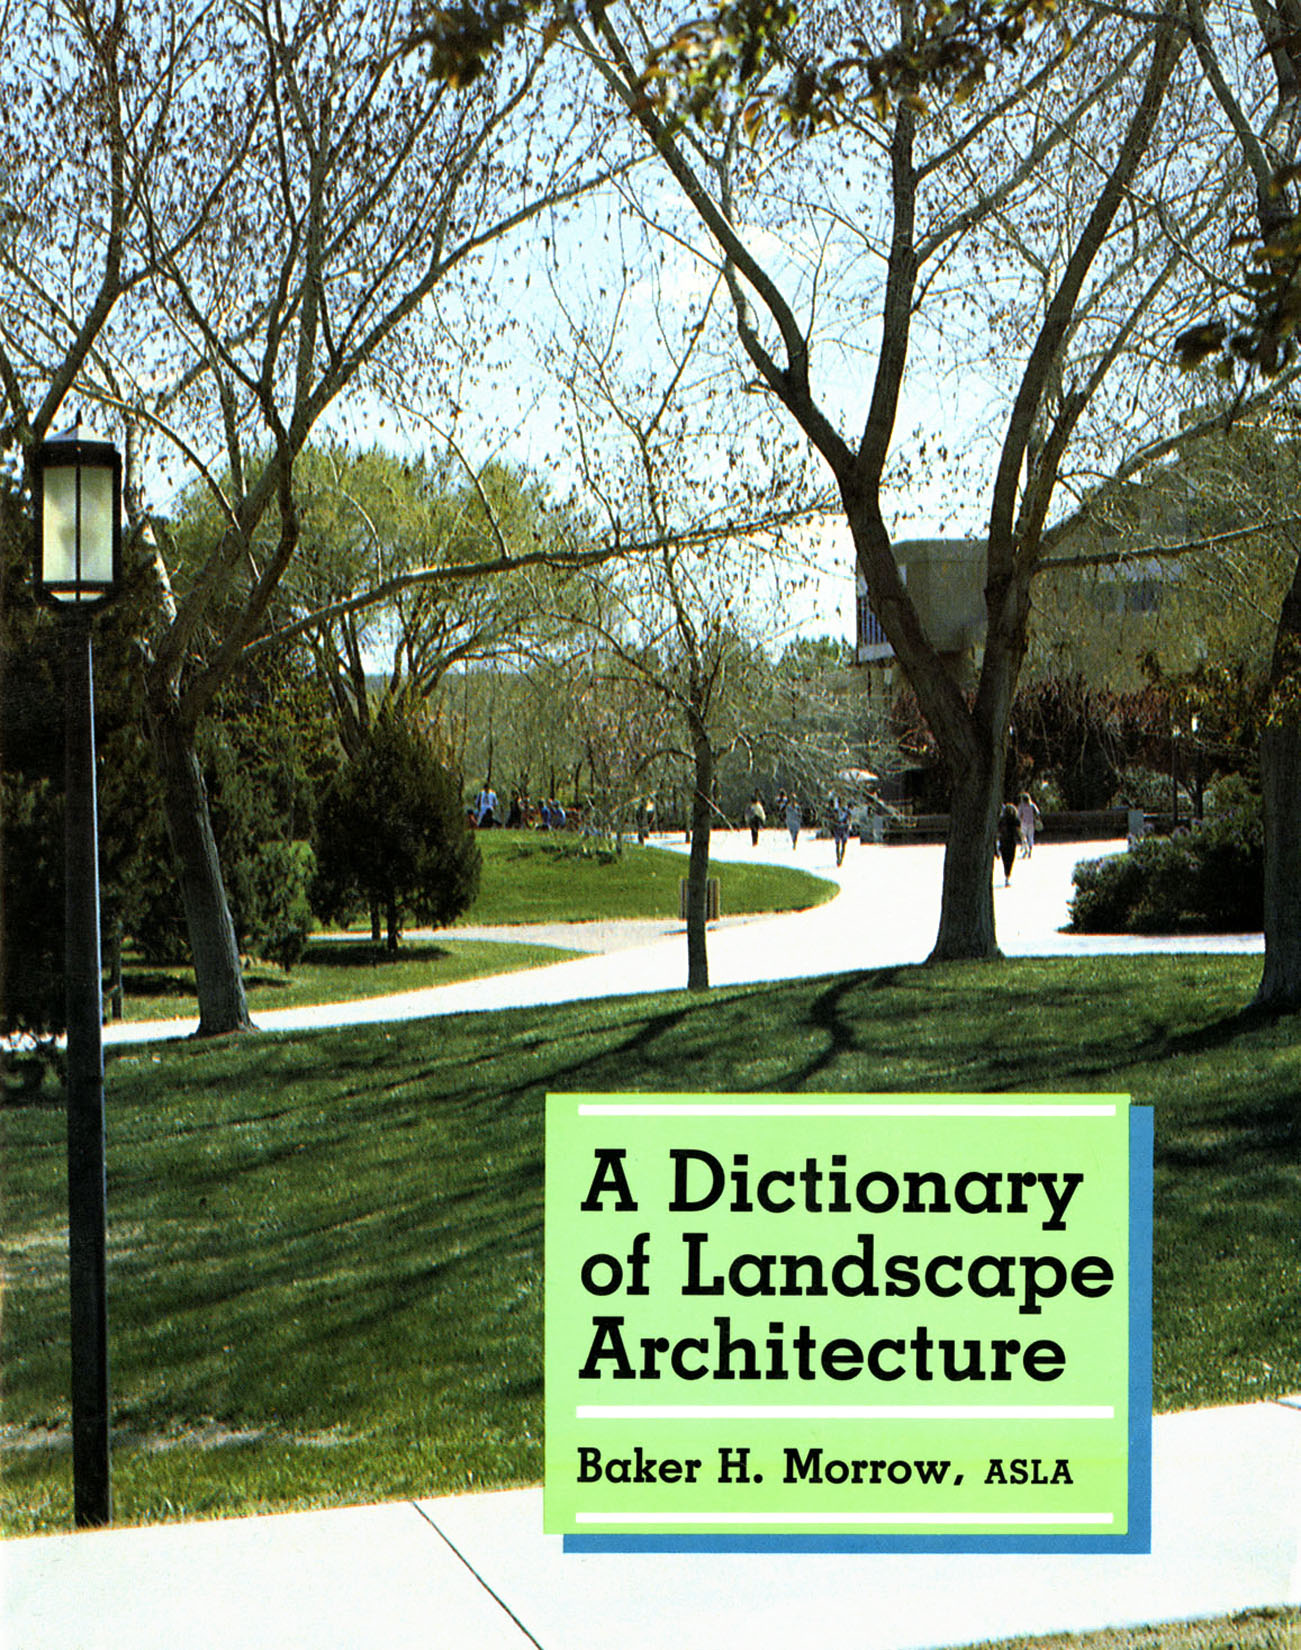 A Dictionary of Landscape Architecture.jpg